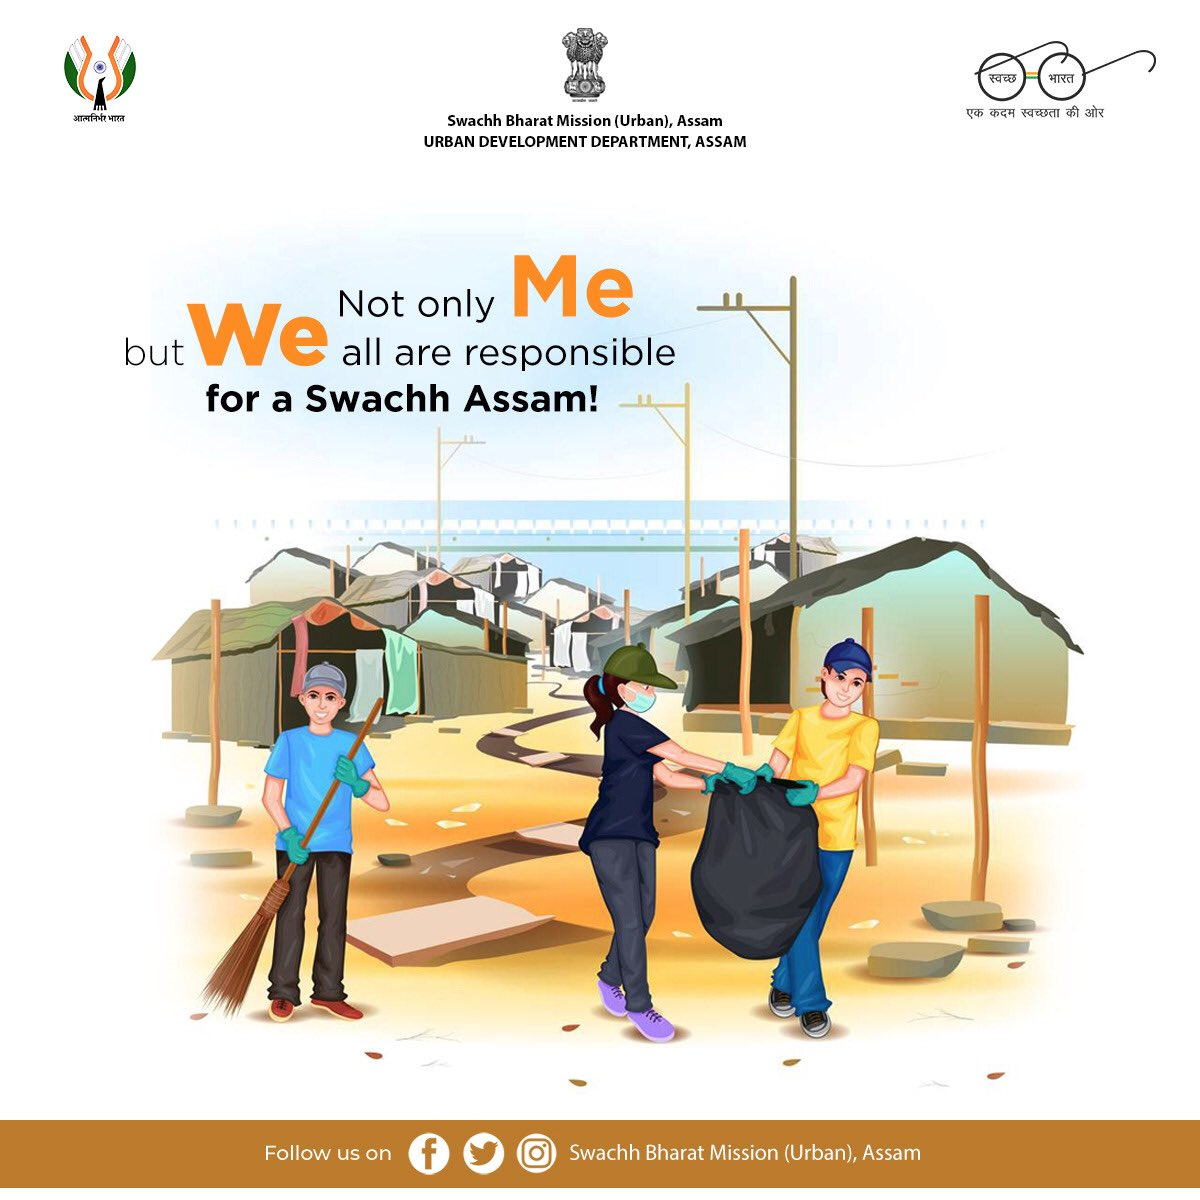 We are all in this together. Let us all work for a Swacch Assam. #SwachhBharat #SwachhAssam #cleanindia  #weareinthistogether  #wenotme  #swachhatahiseva  #assam